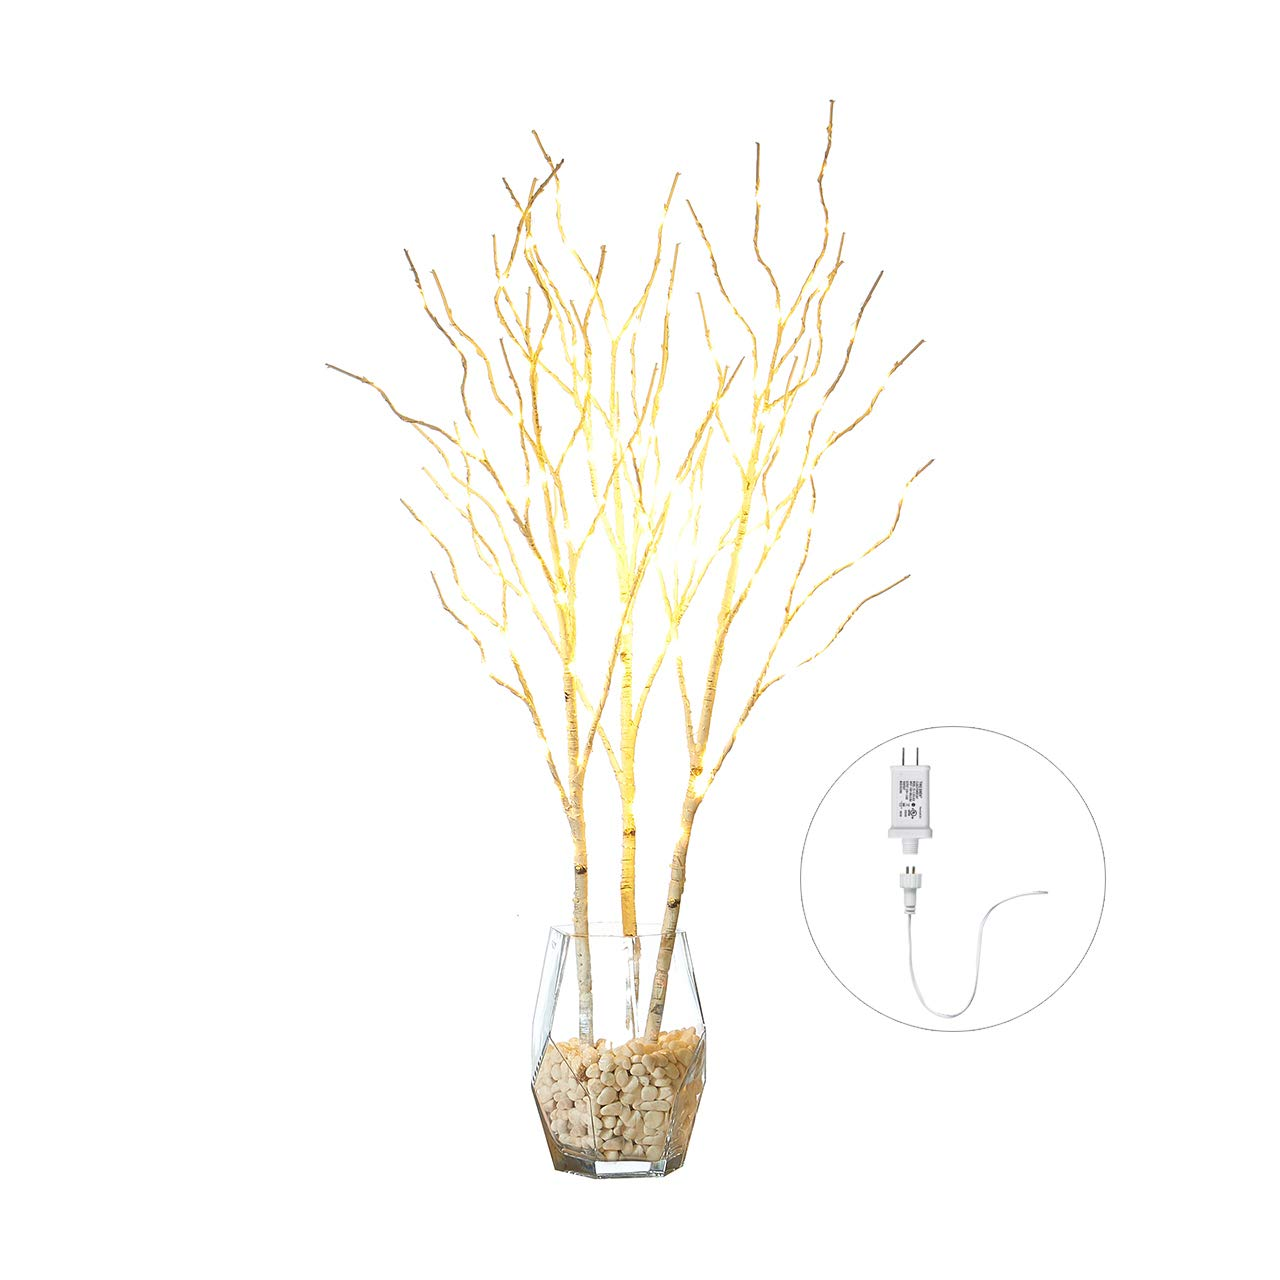 Hairui Lighted White Birch Willow Branches with Fairy Lights Decor 32in 150LED, Pre lit Artificial Twig Tree Branch Lights for with Timer for Indoor Home Decoration Plug in 3 Pack (Vase Excluded)